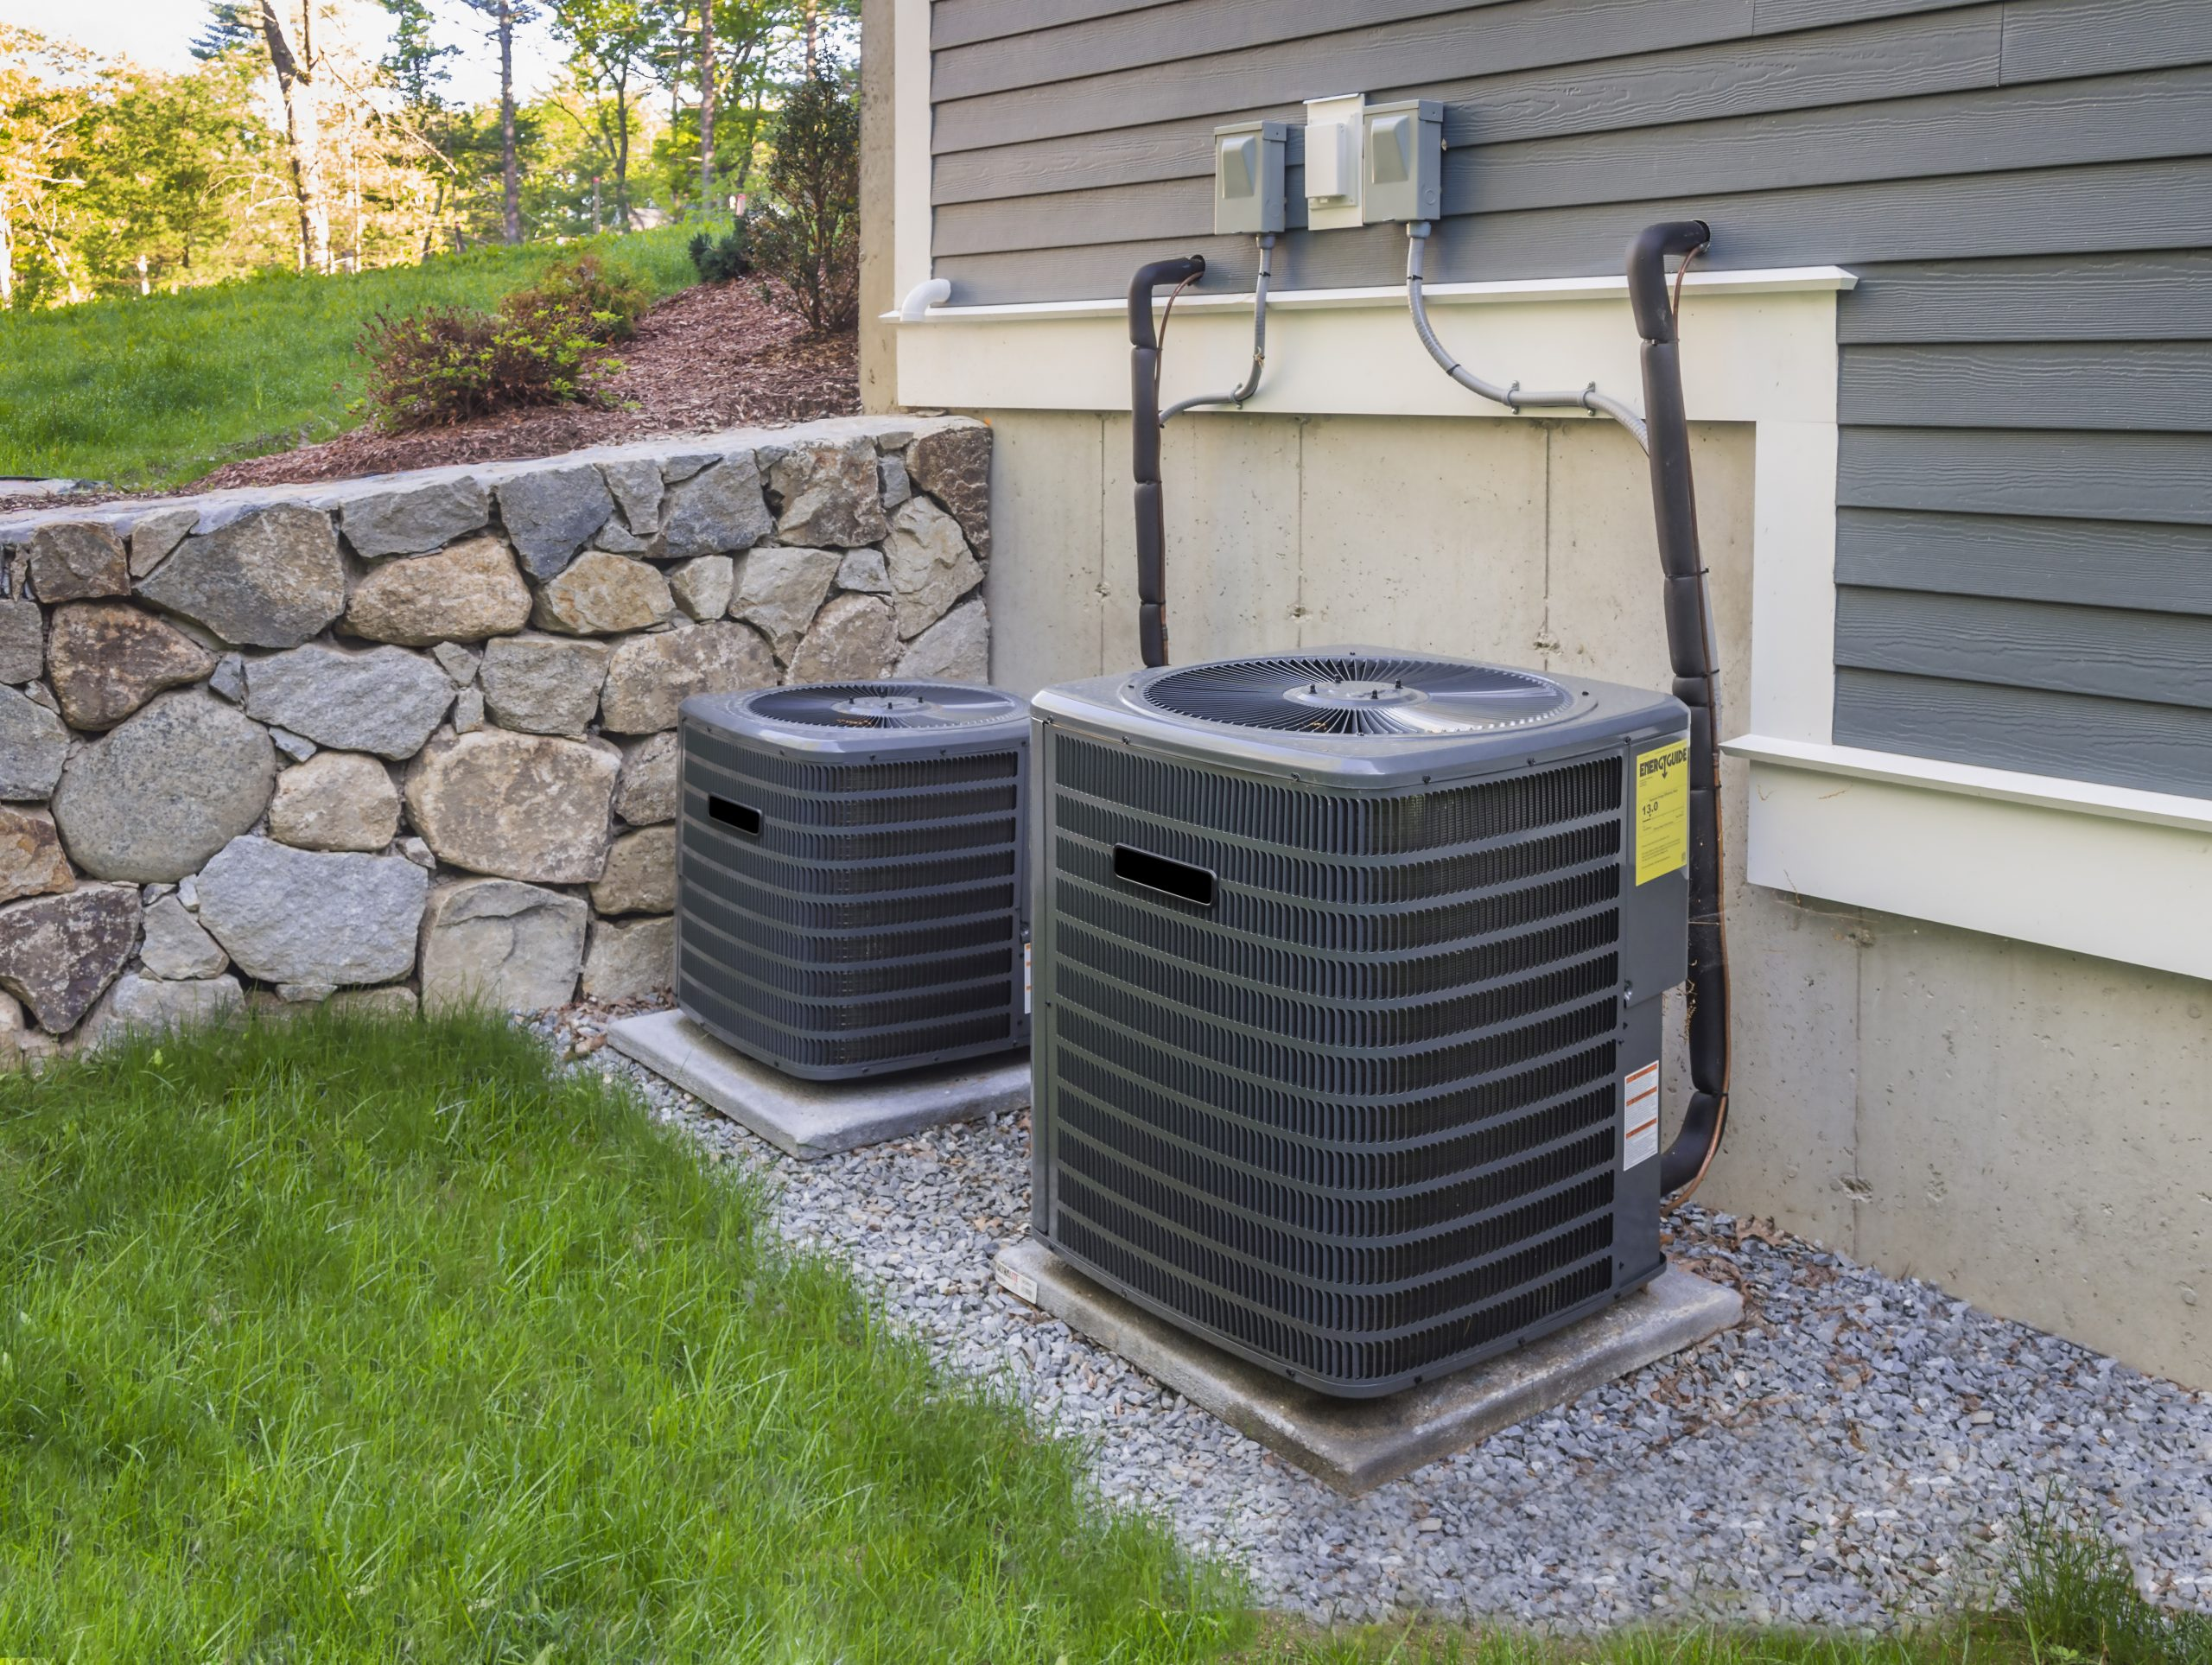 What Are Some Key Signs You Should Replace a Home Heating System?